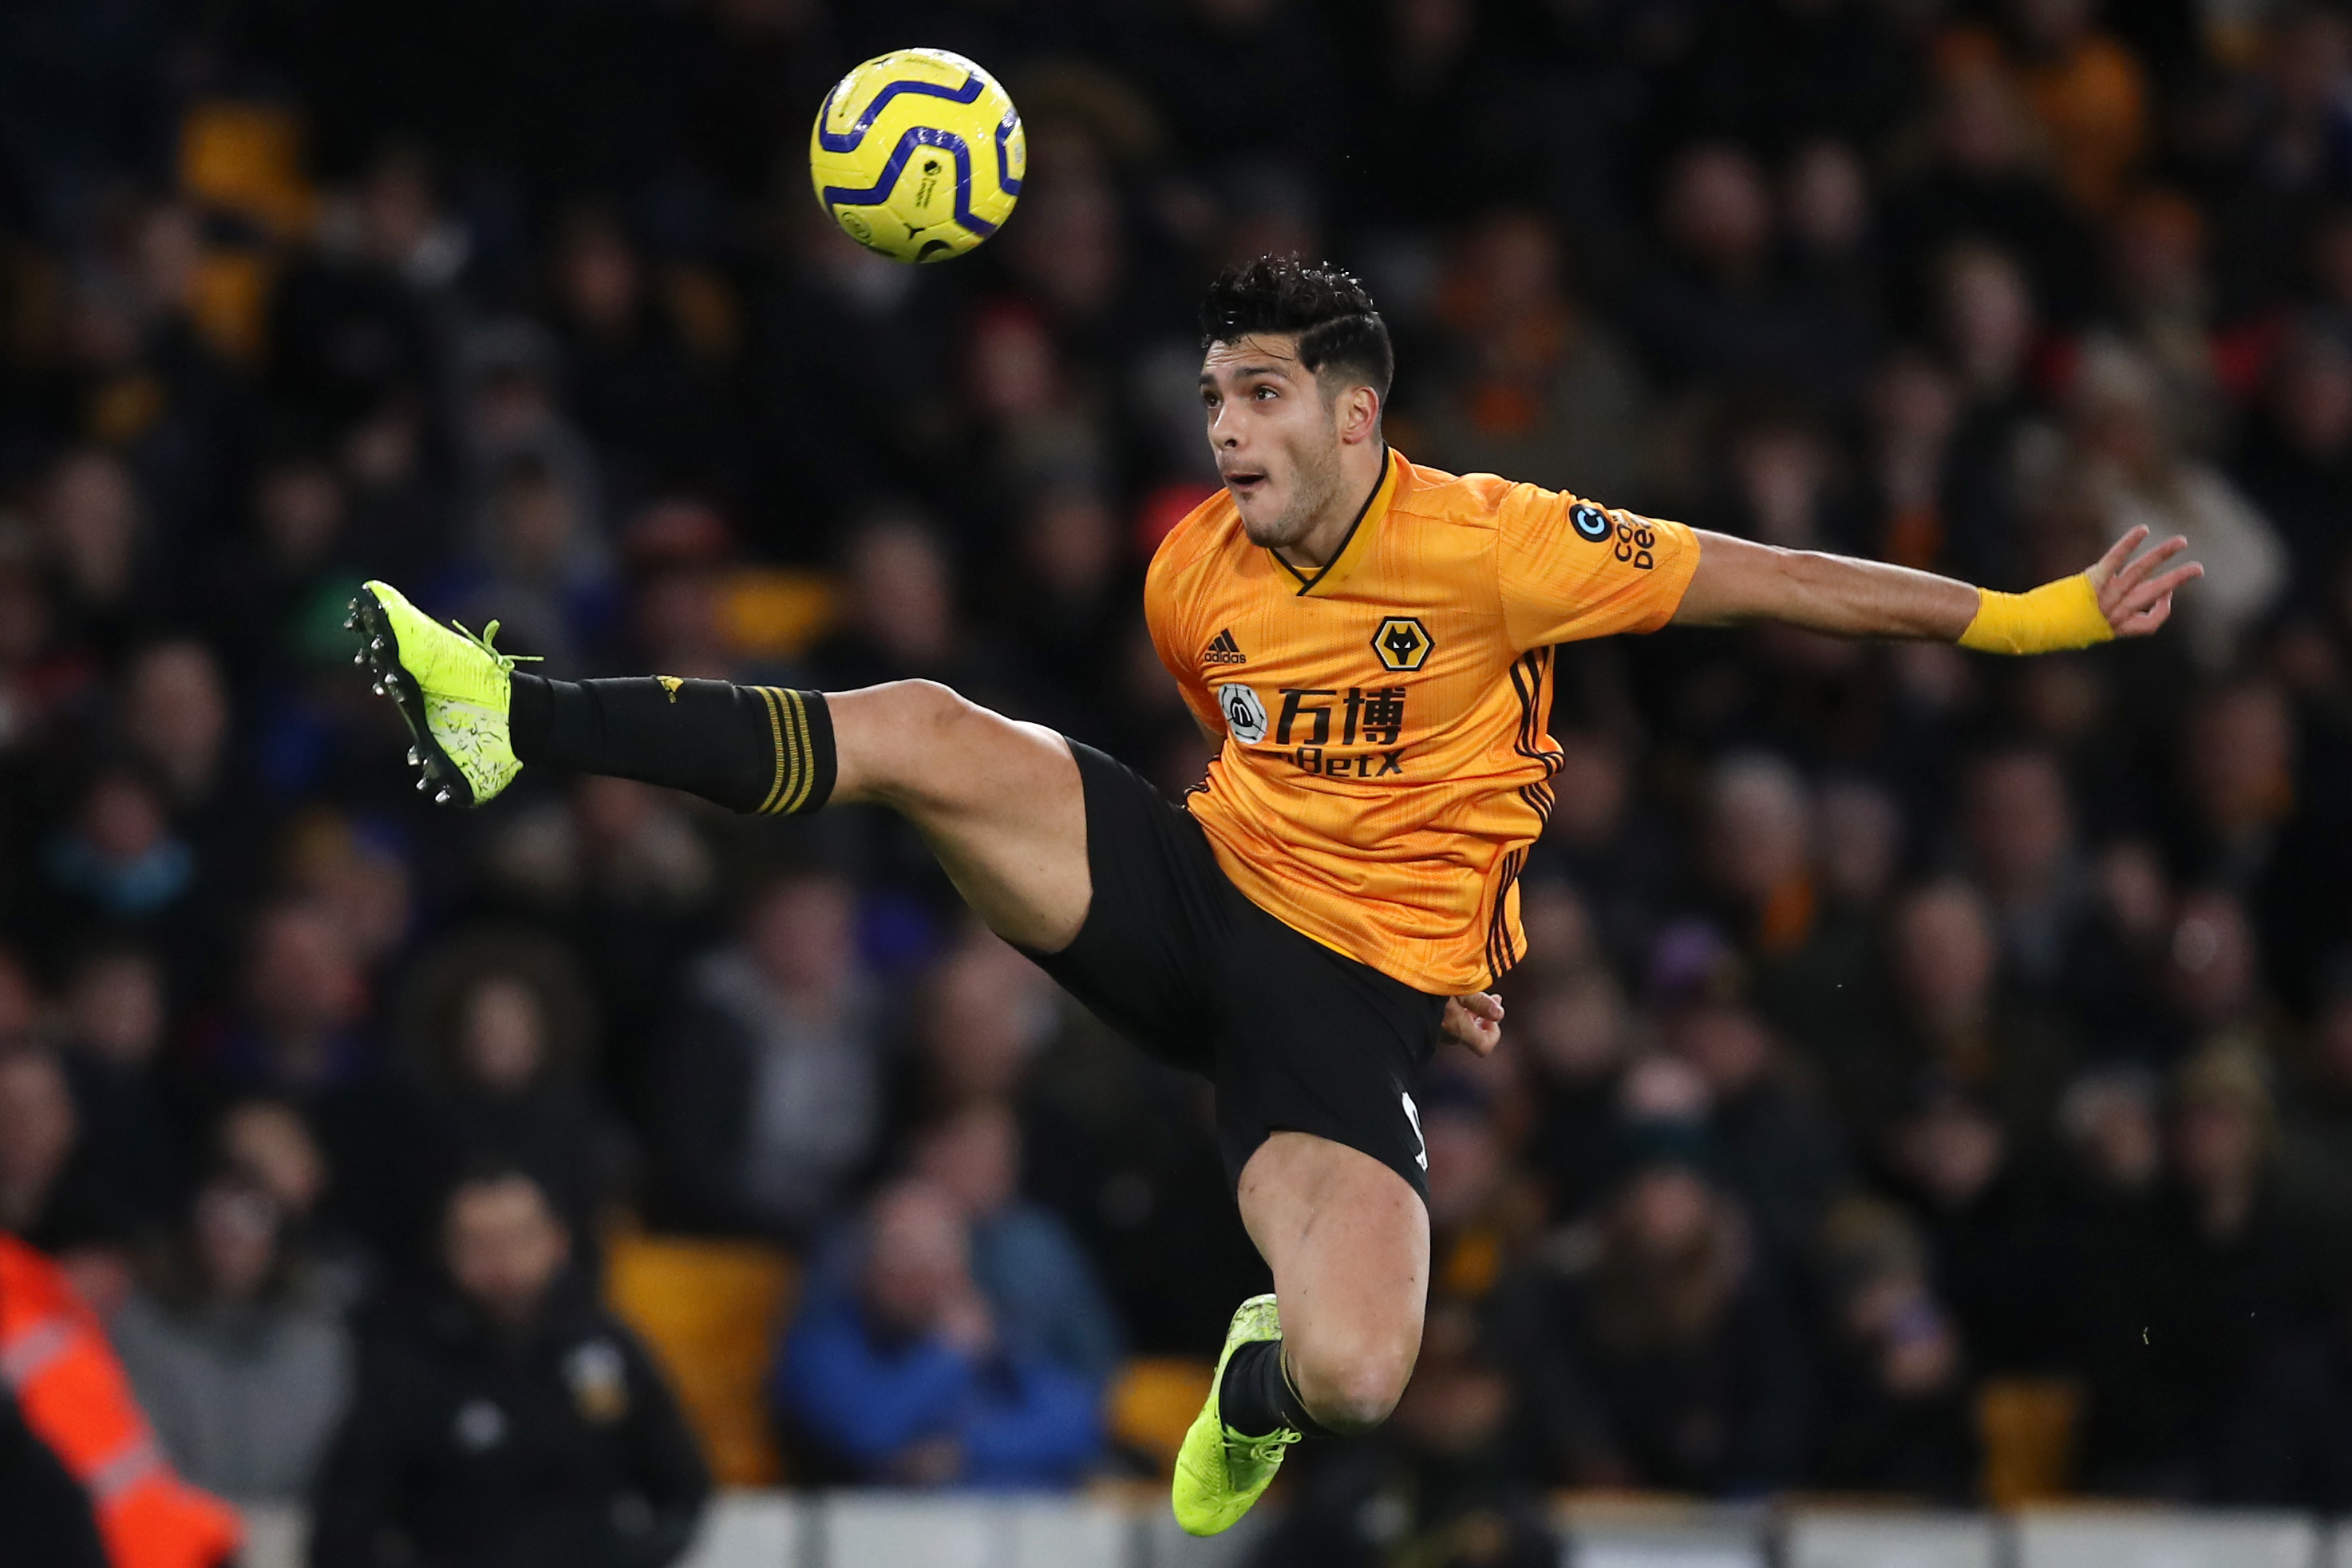 Jimenez wanted by Manchester United (Photo by Marc Atkins/Getty Images)